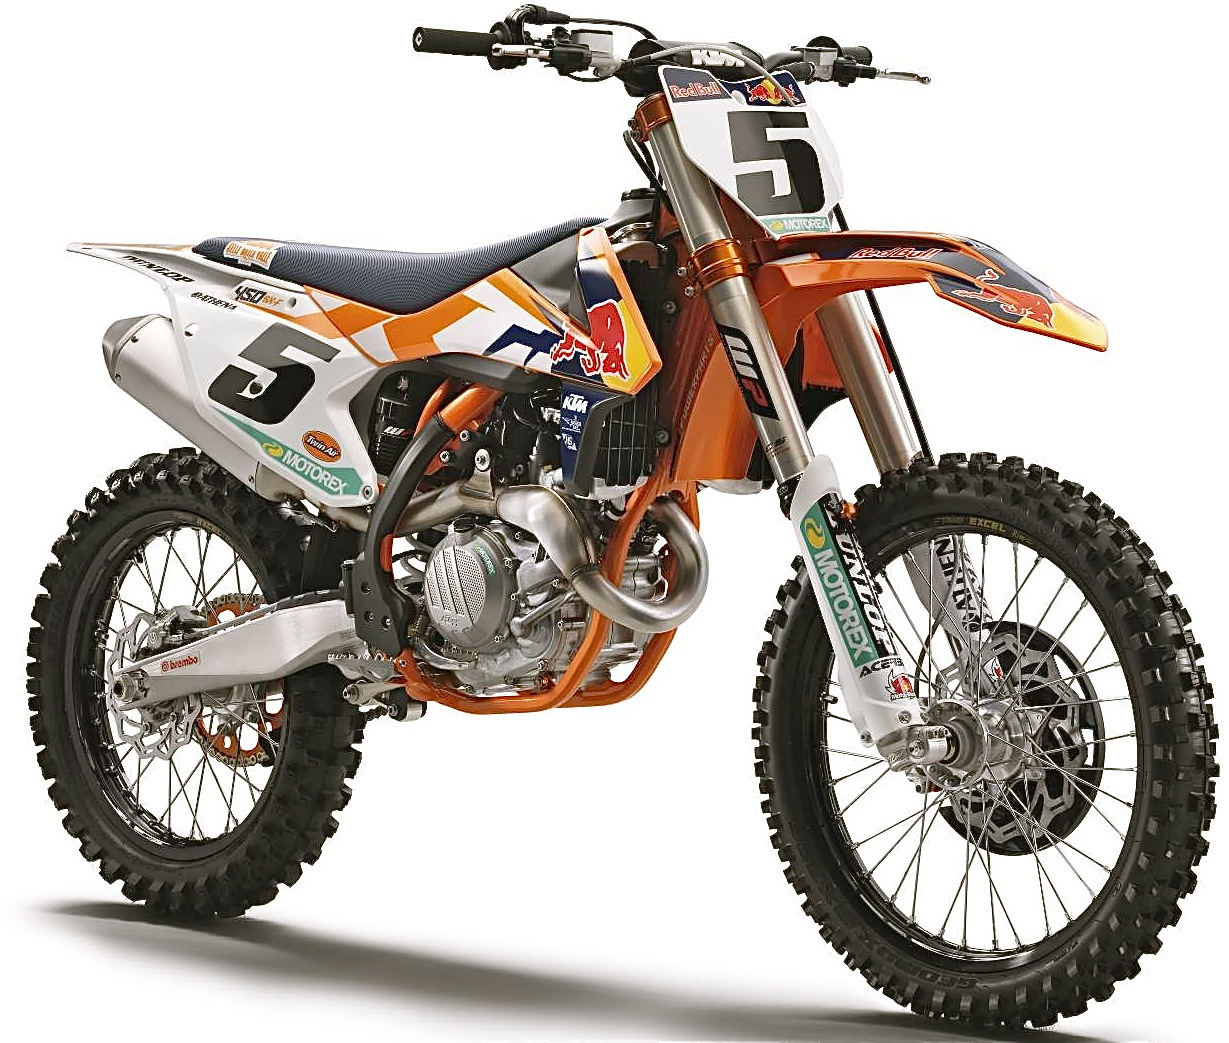 Rd Secrets Of The All New Ktm Factory Editions Motocross Action 520 Sx Wiring Diagram 450 Sxf Ri Front